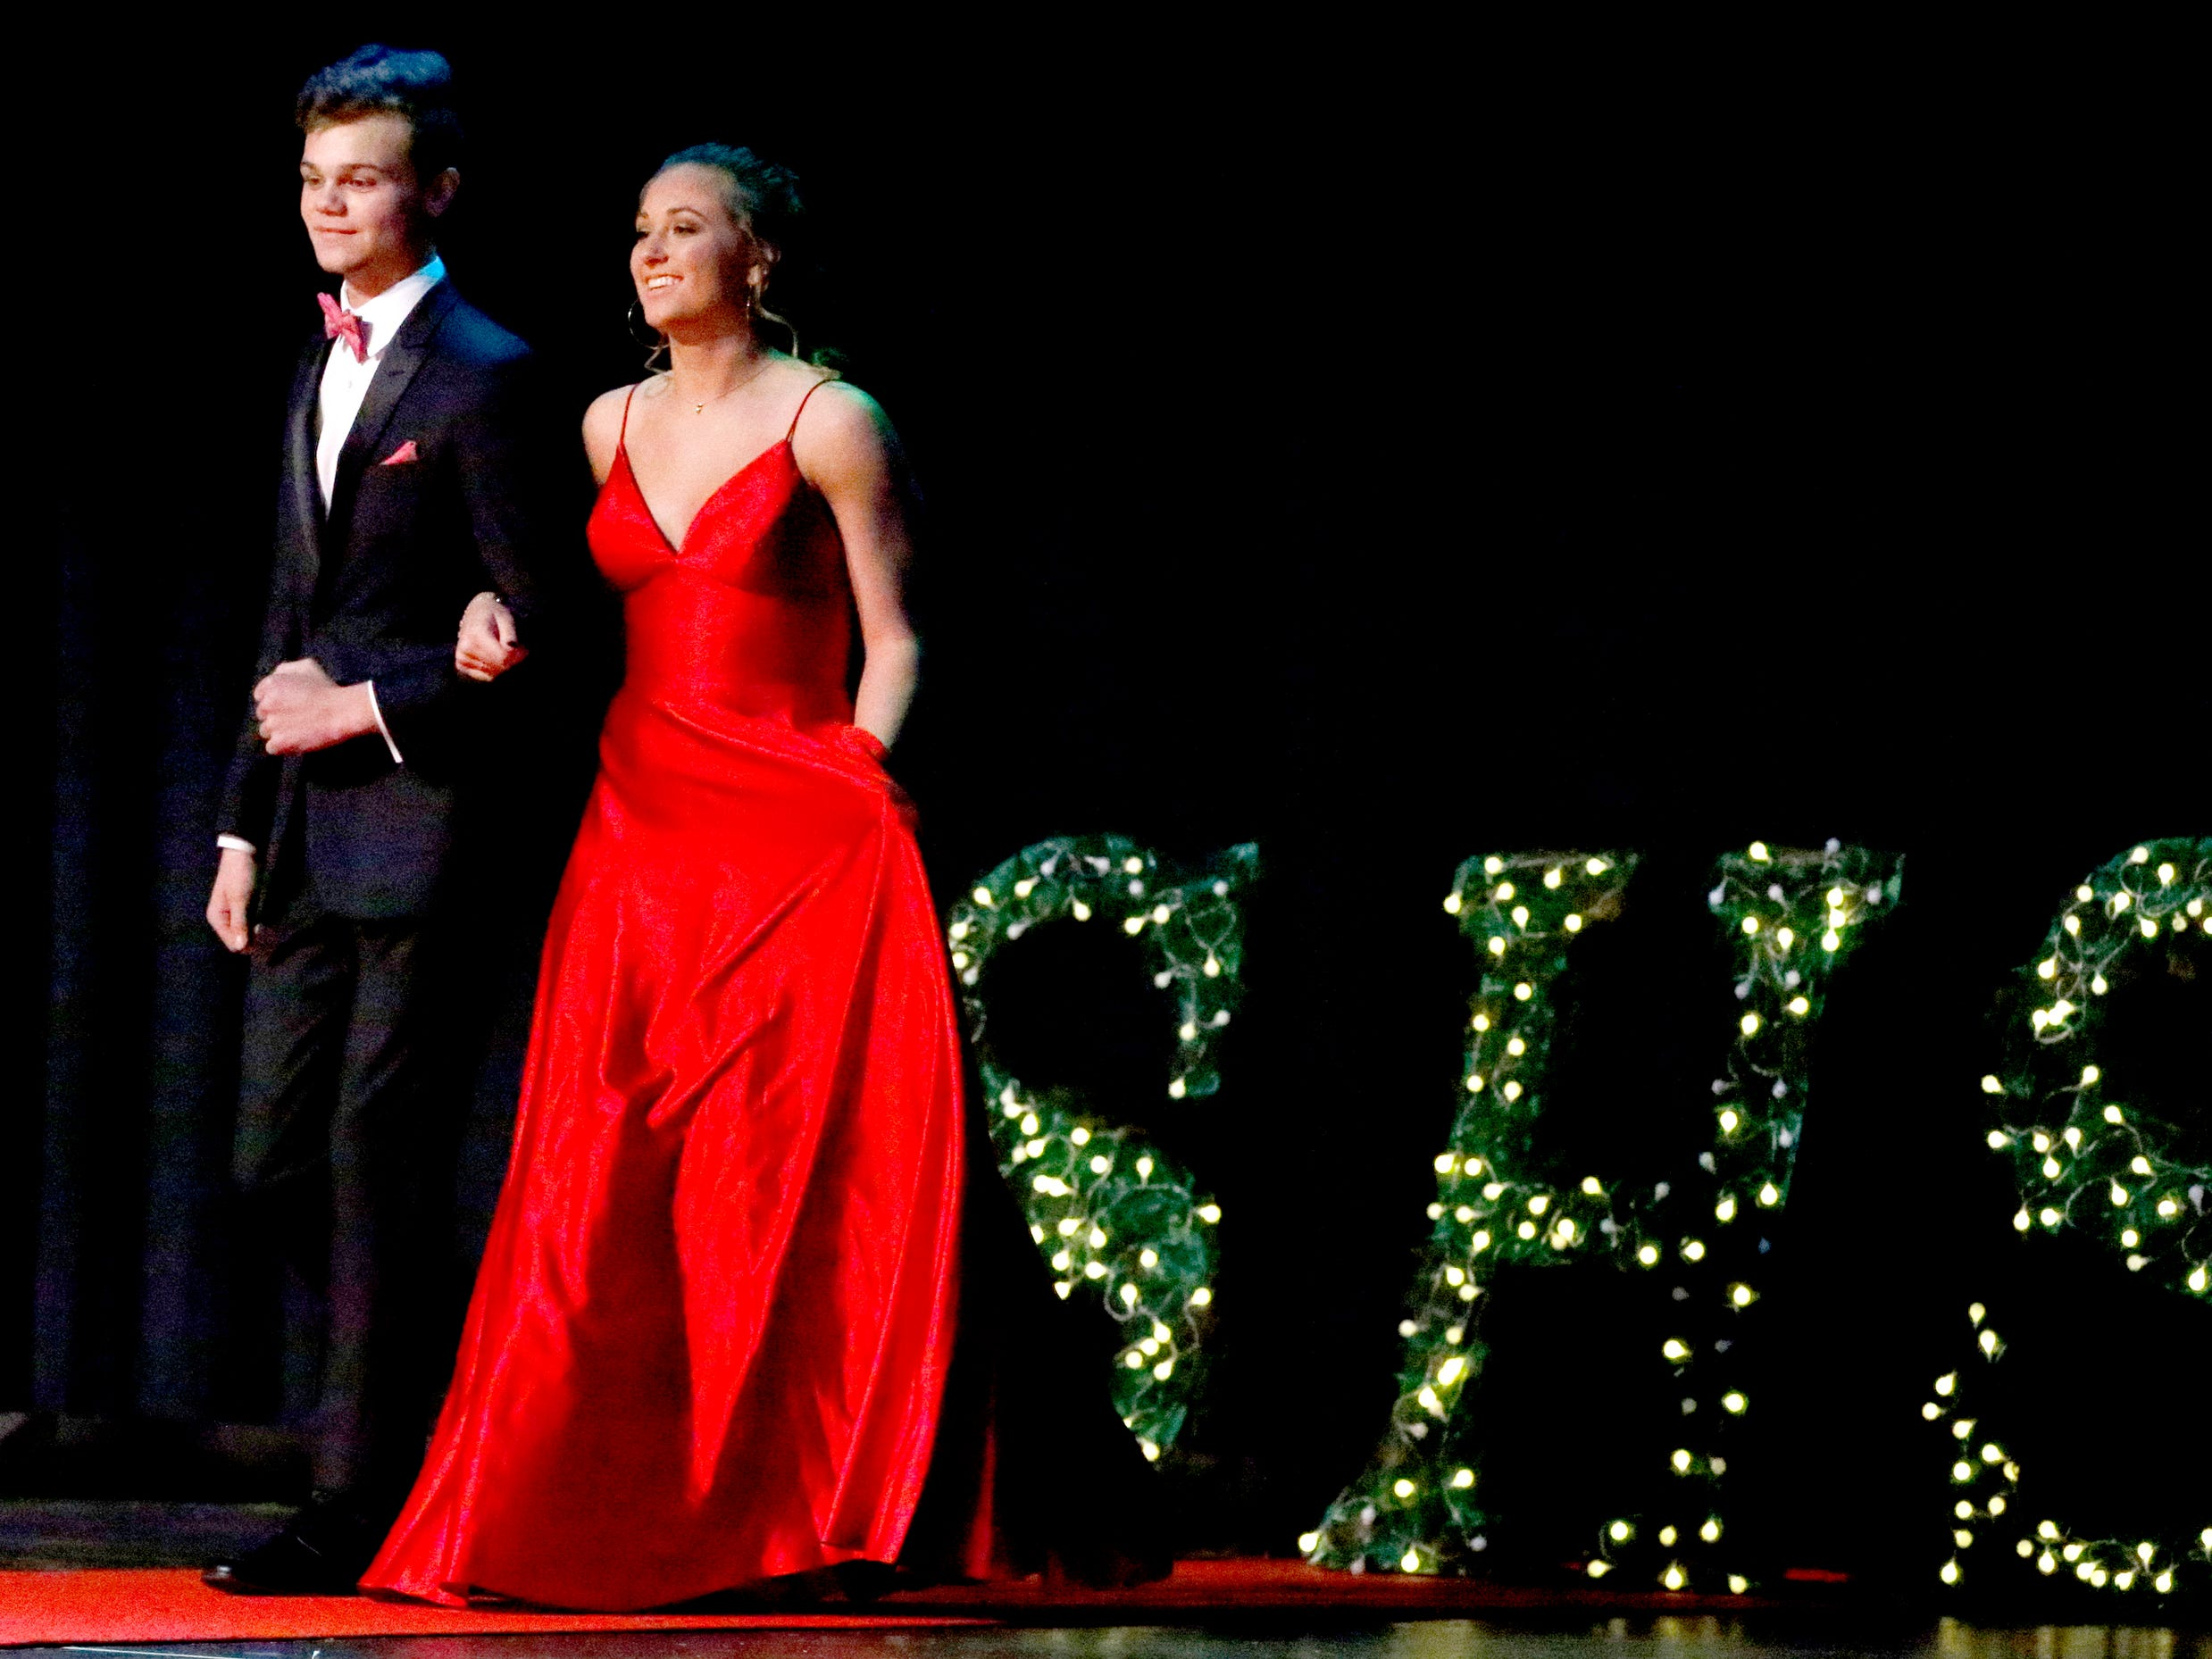 Collin Mathis, left and Julia Wheeler, right show off the latest in prom fashions during the Siegel Prom Fashion show on Thursday, Feb. 14, 2019.